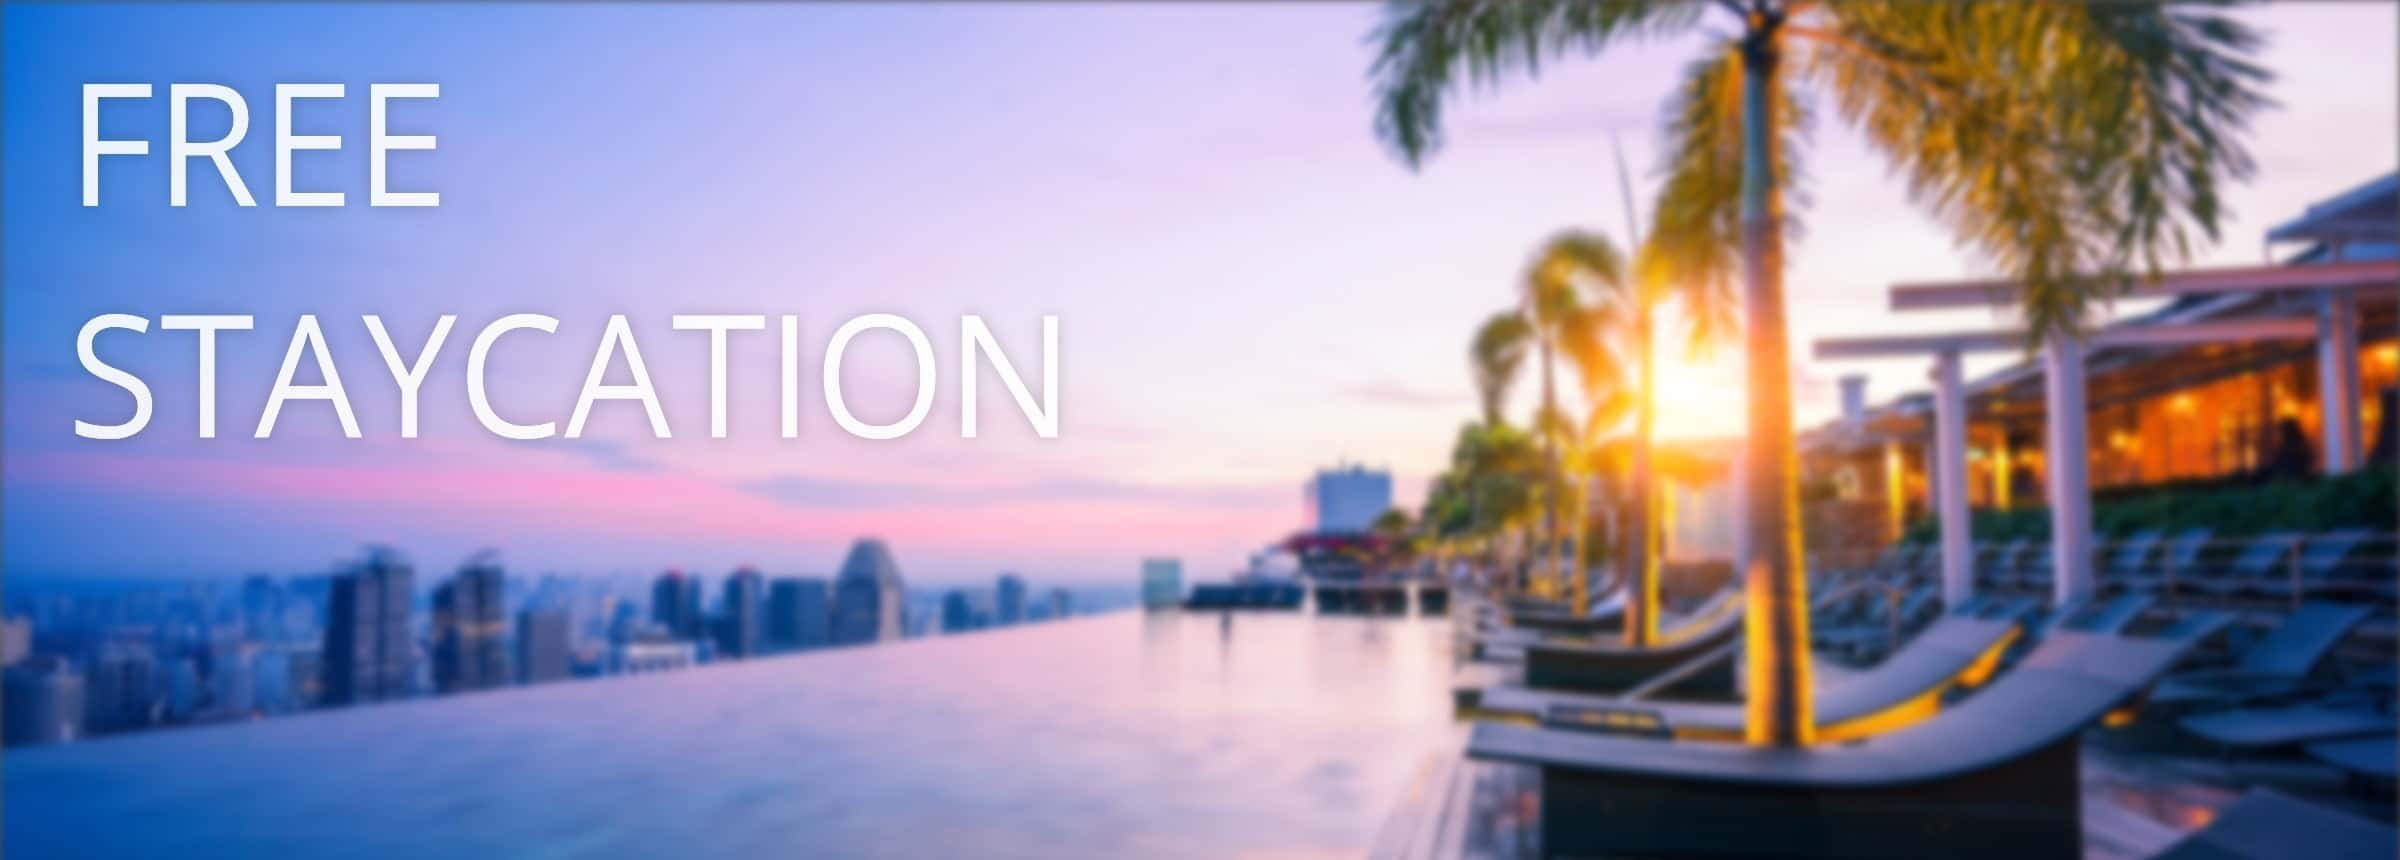 August Deals: Get a Free Staycation, Samsung Earphones, and Money!